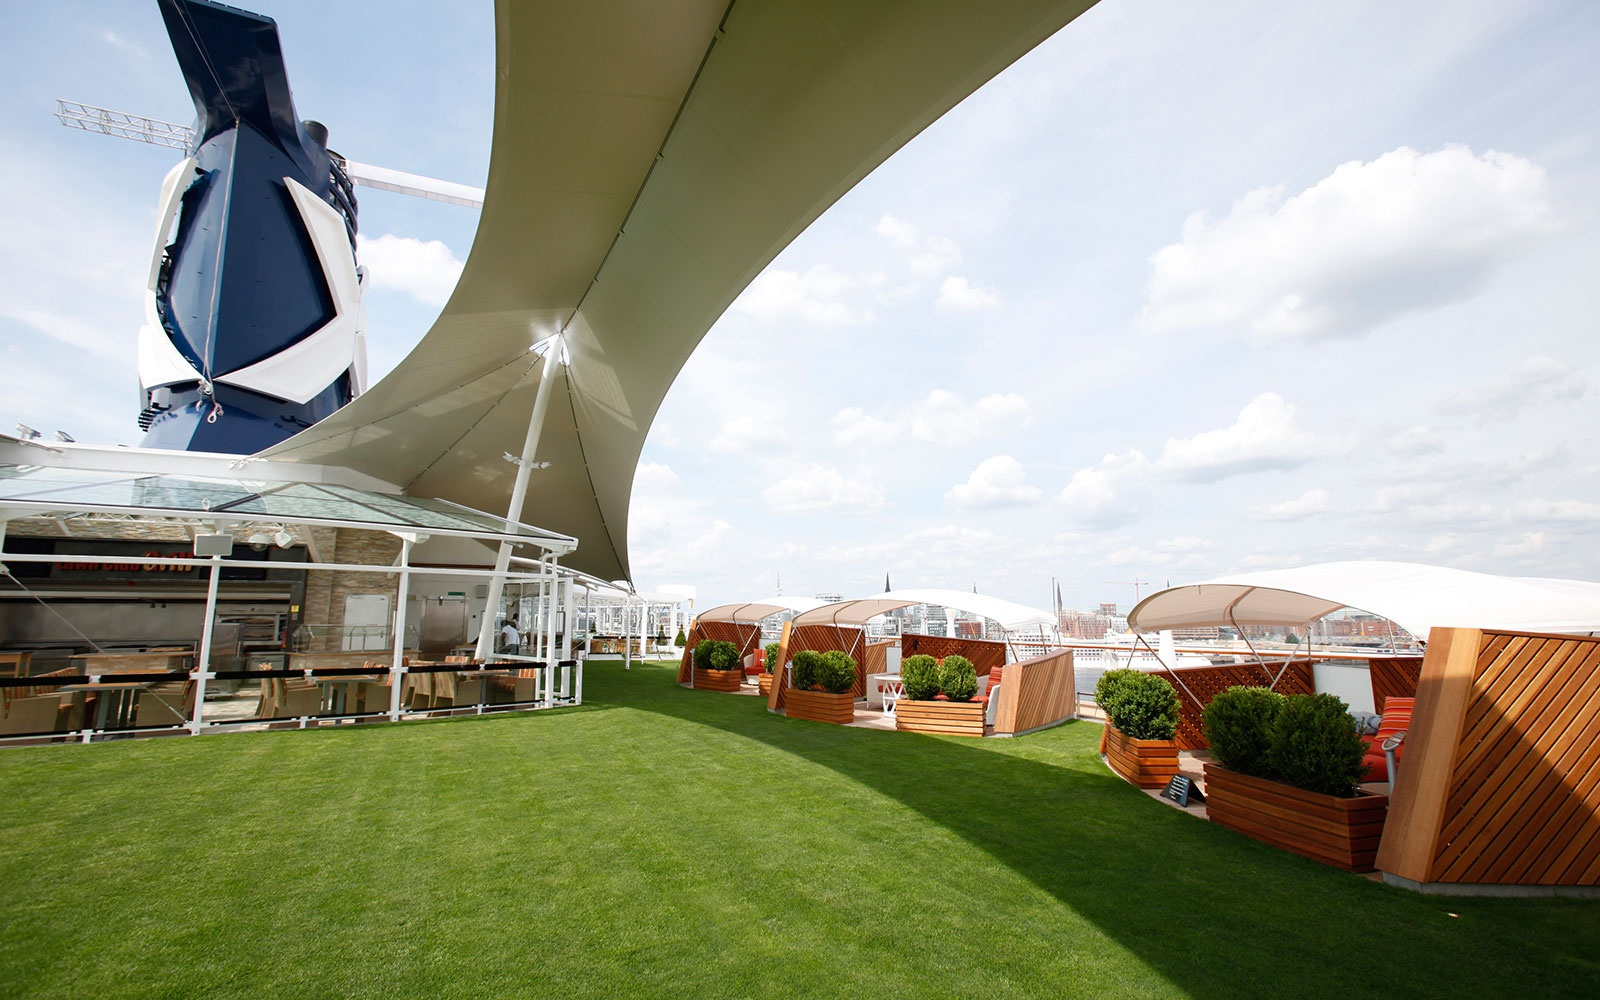 Lawn Club on Celebrity's Solstice